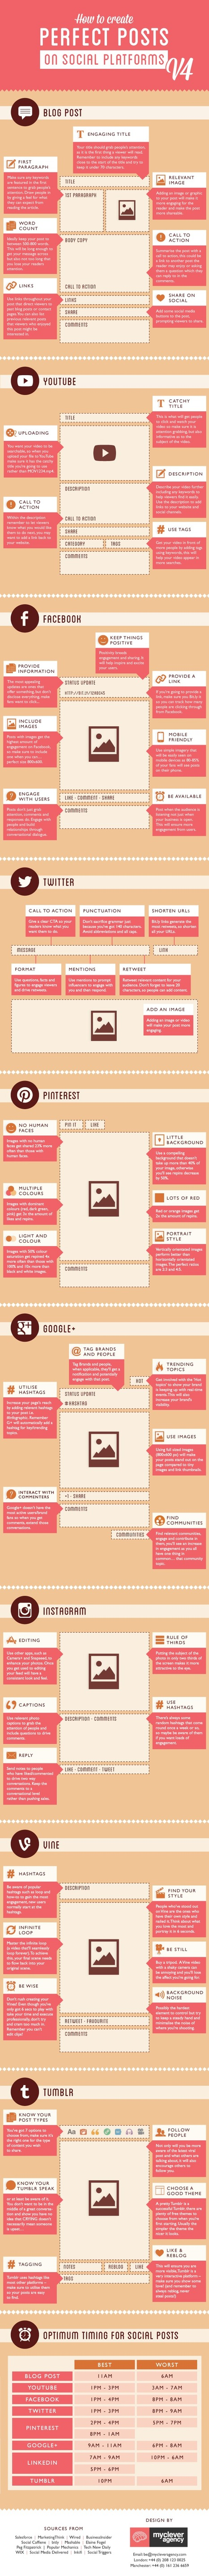 The Art of Creating Perfect Social Media Posts - infographic | whiteline | Scoop.it